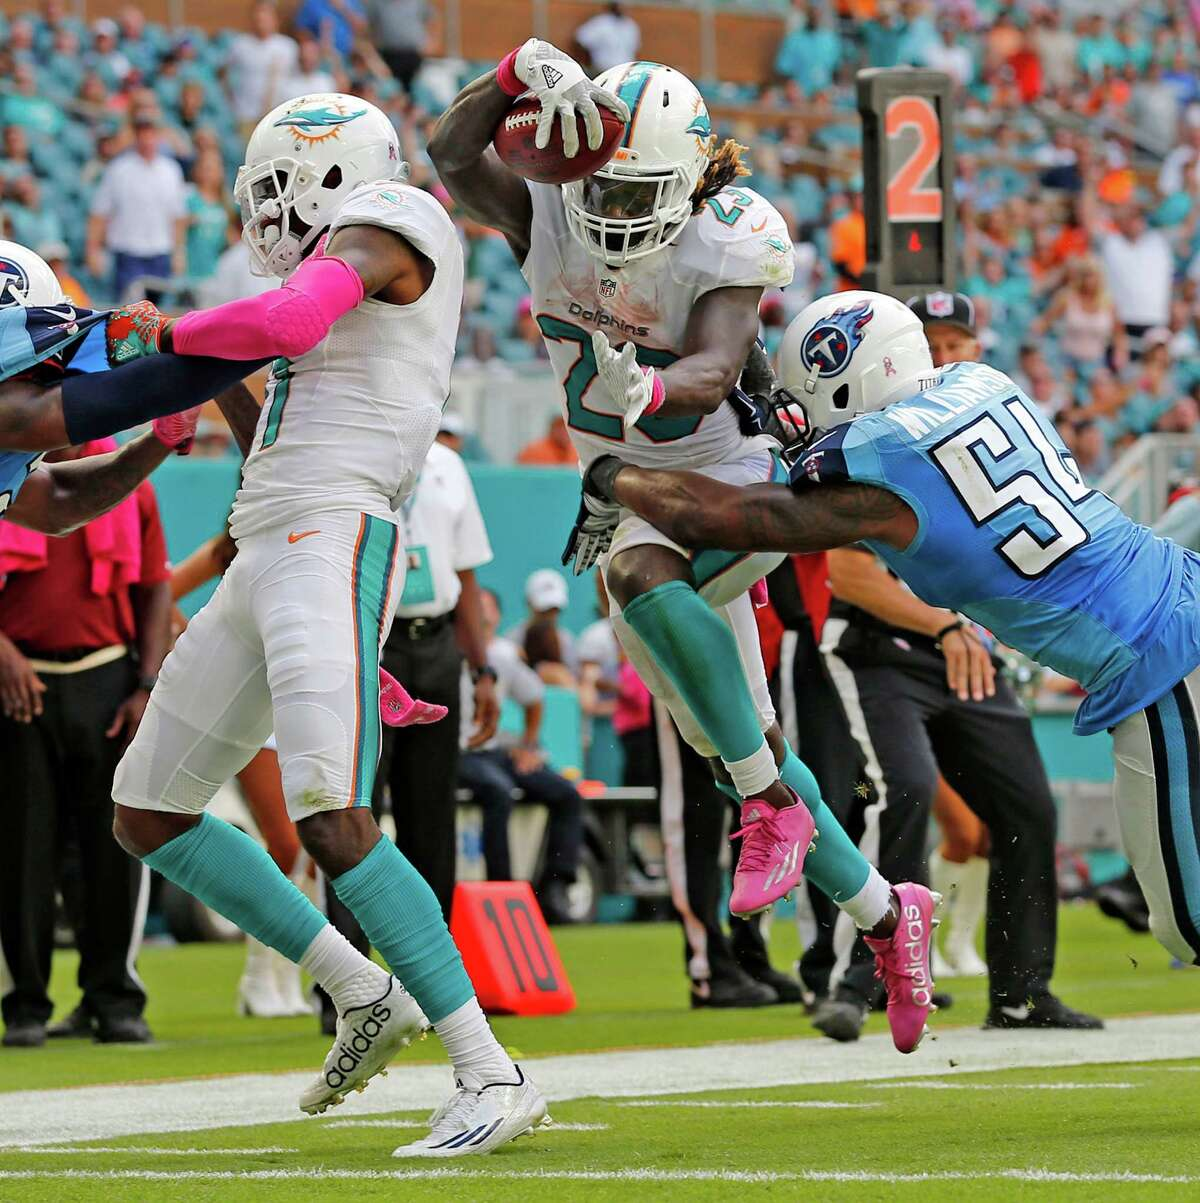 30. Miami 1-4 | Last week: 26 The Dolphins are struggling in Adam Gase's first season as coach. If not for an overtime victory over Cleveland, they'd be winless.